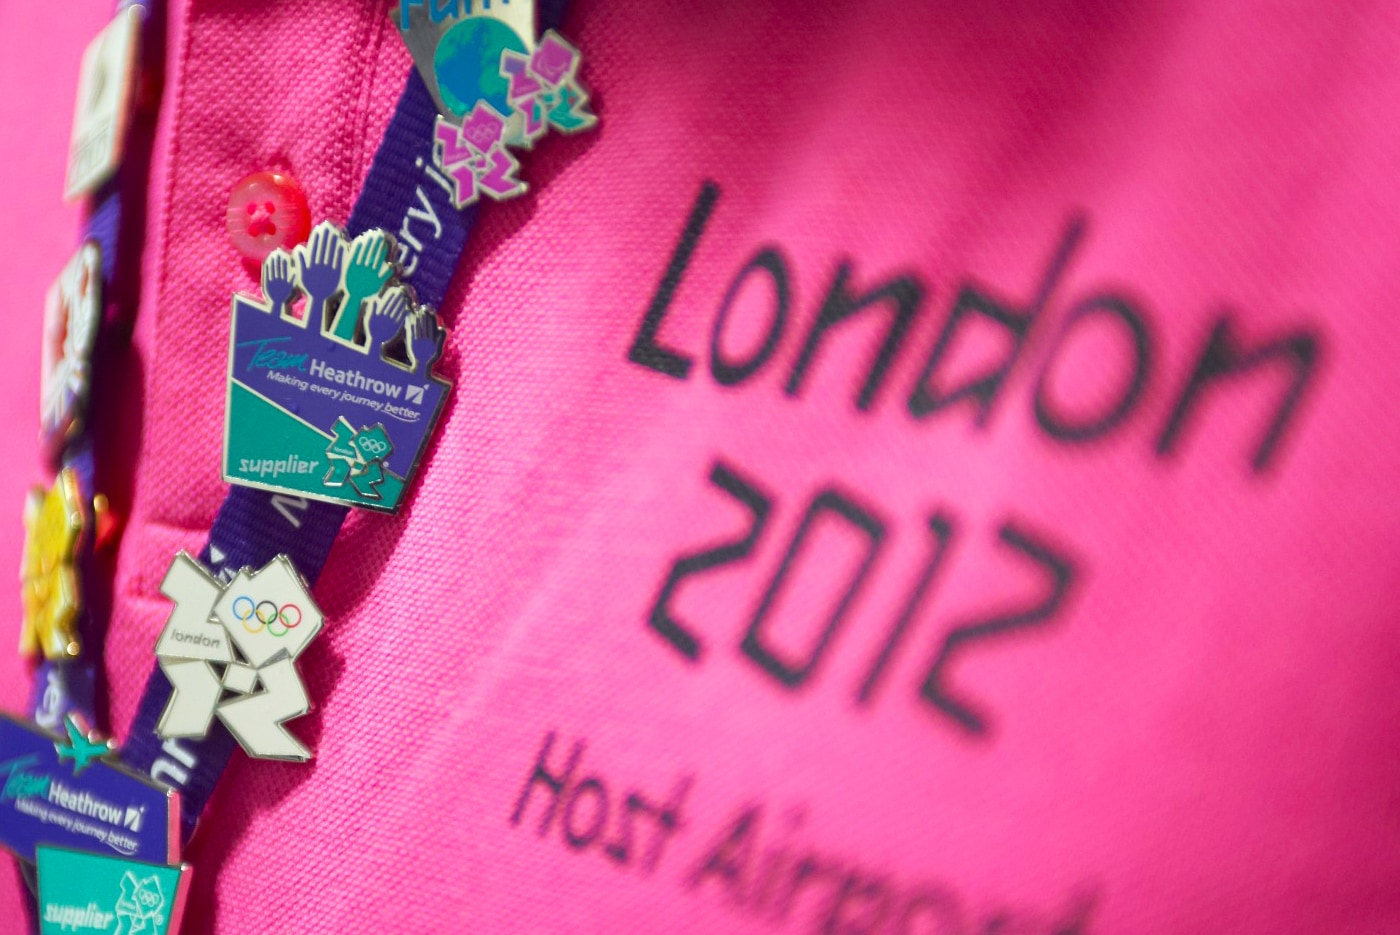 London 2012 - Heathrow and the Games